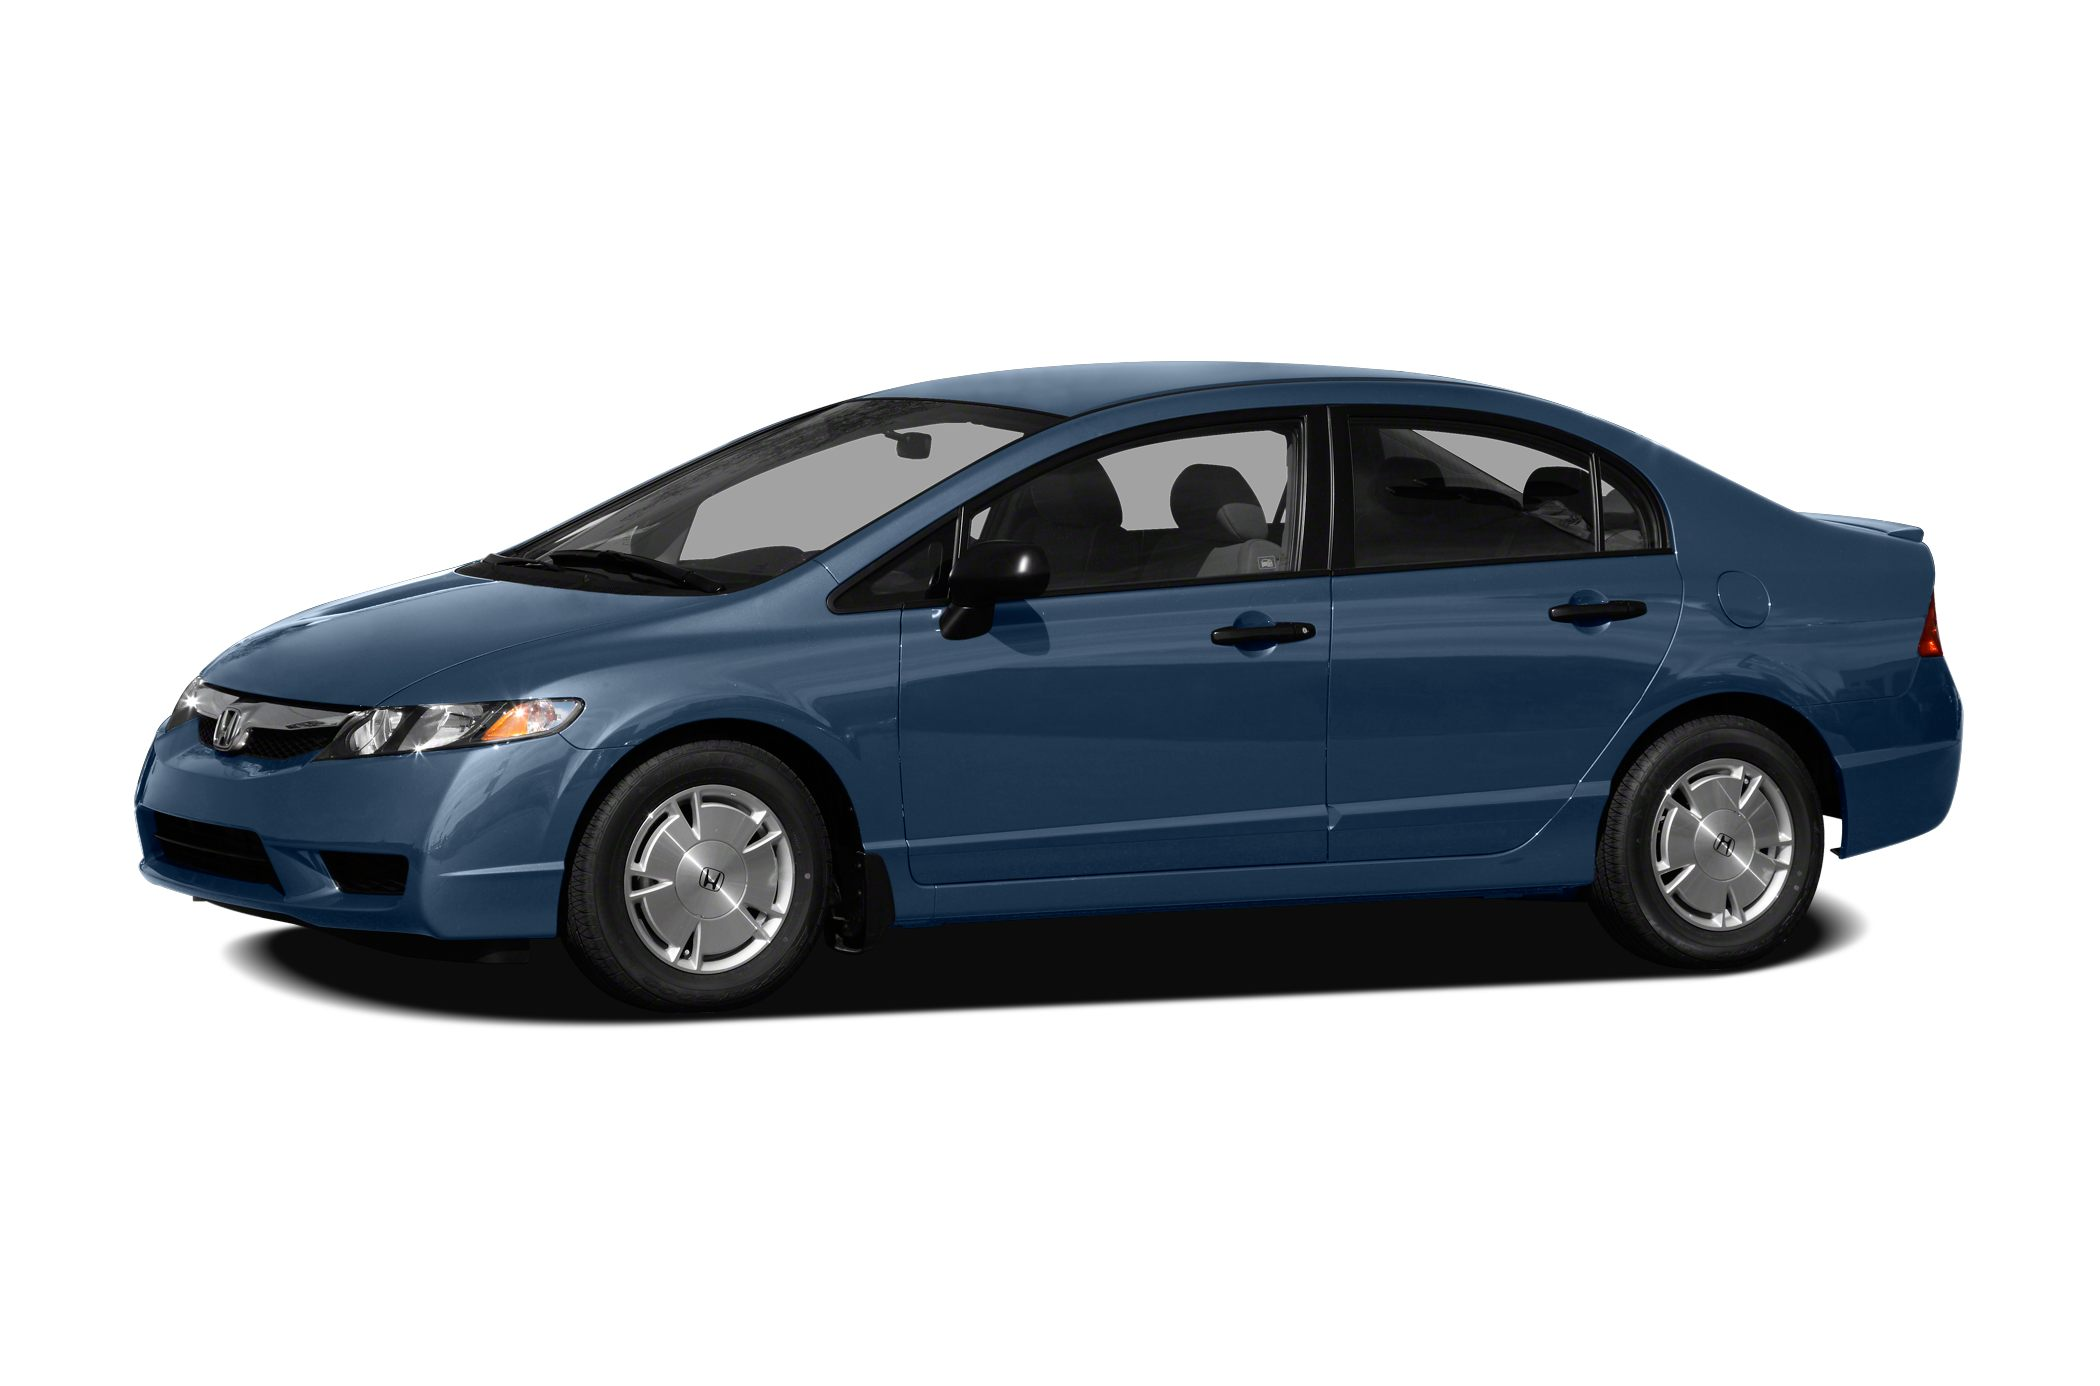 2011 Honda Civic LX Voted 1 Preowned Dealer in Metro Boston 2013  2014 and Voted Best Deals -20